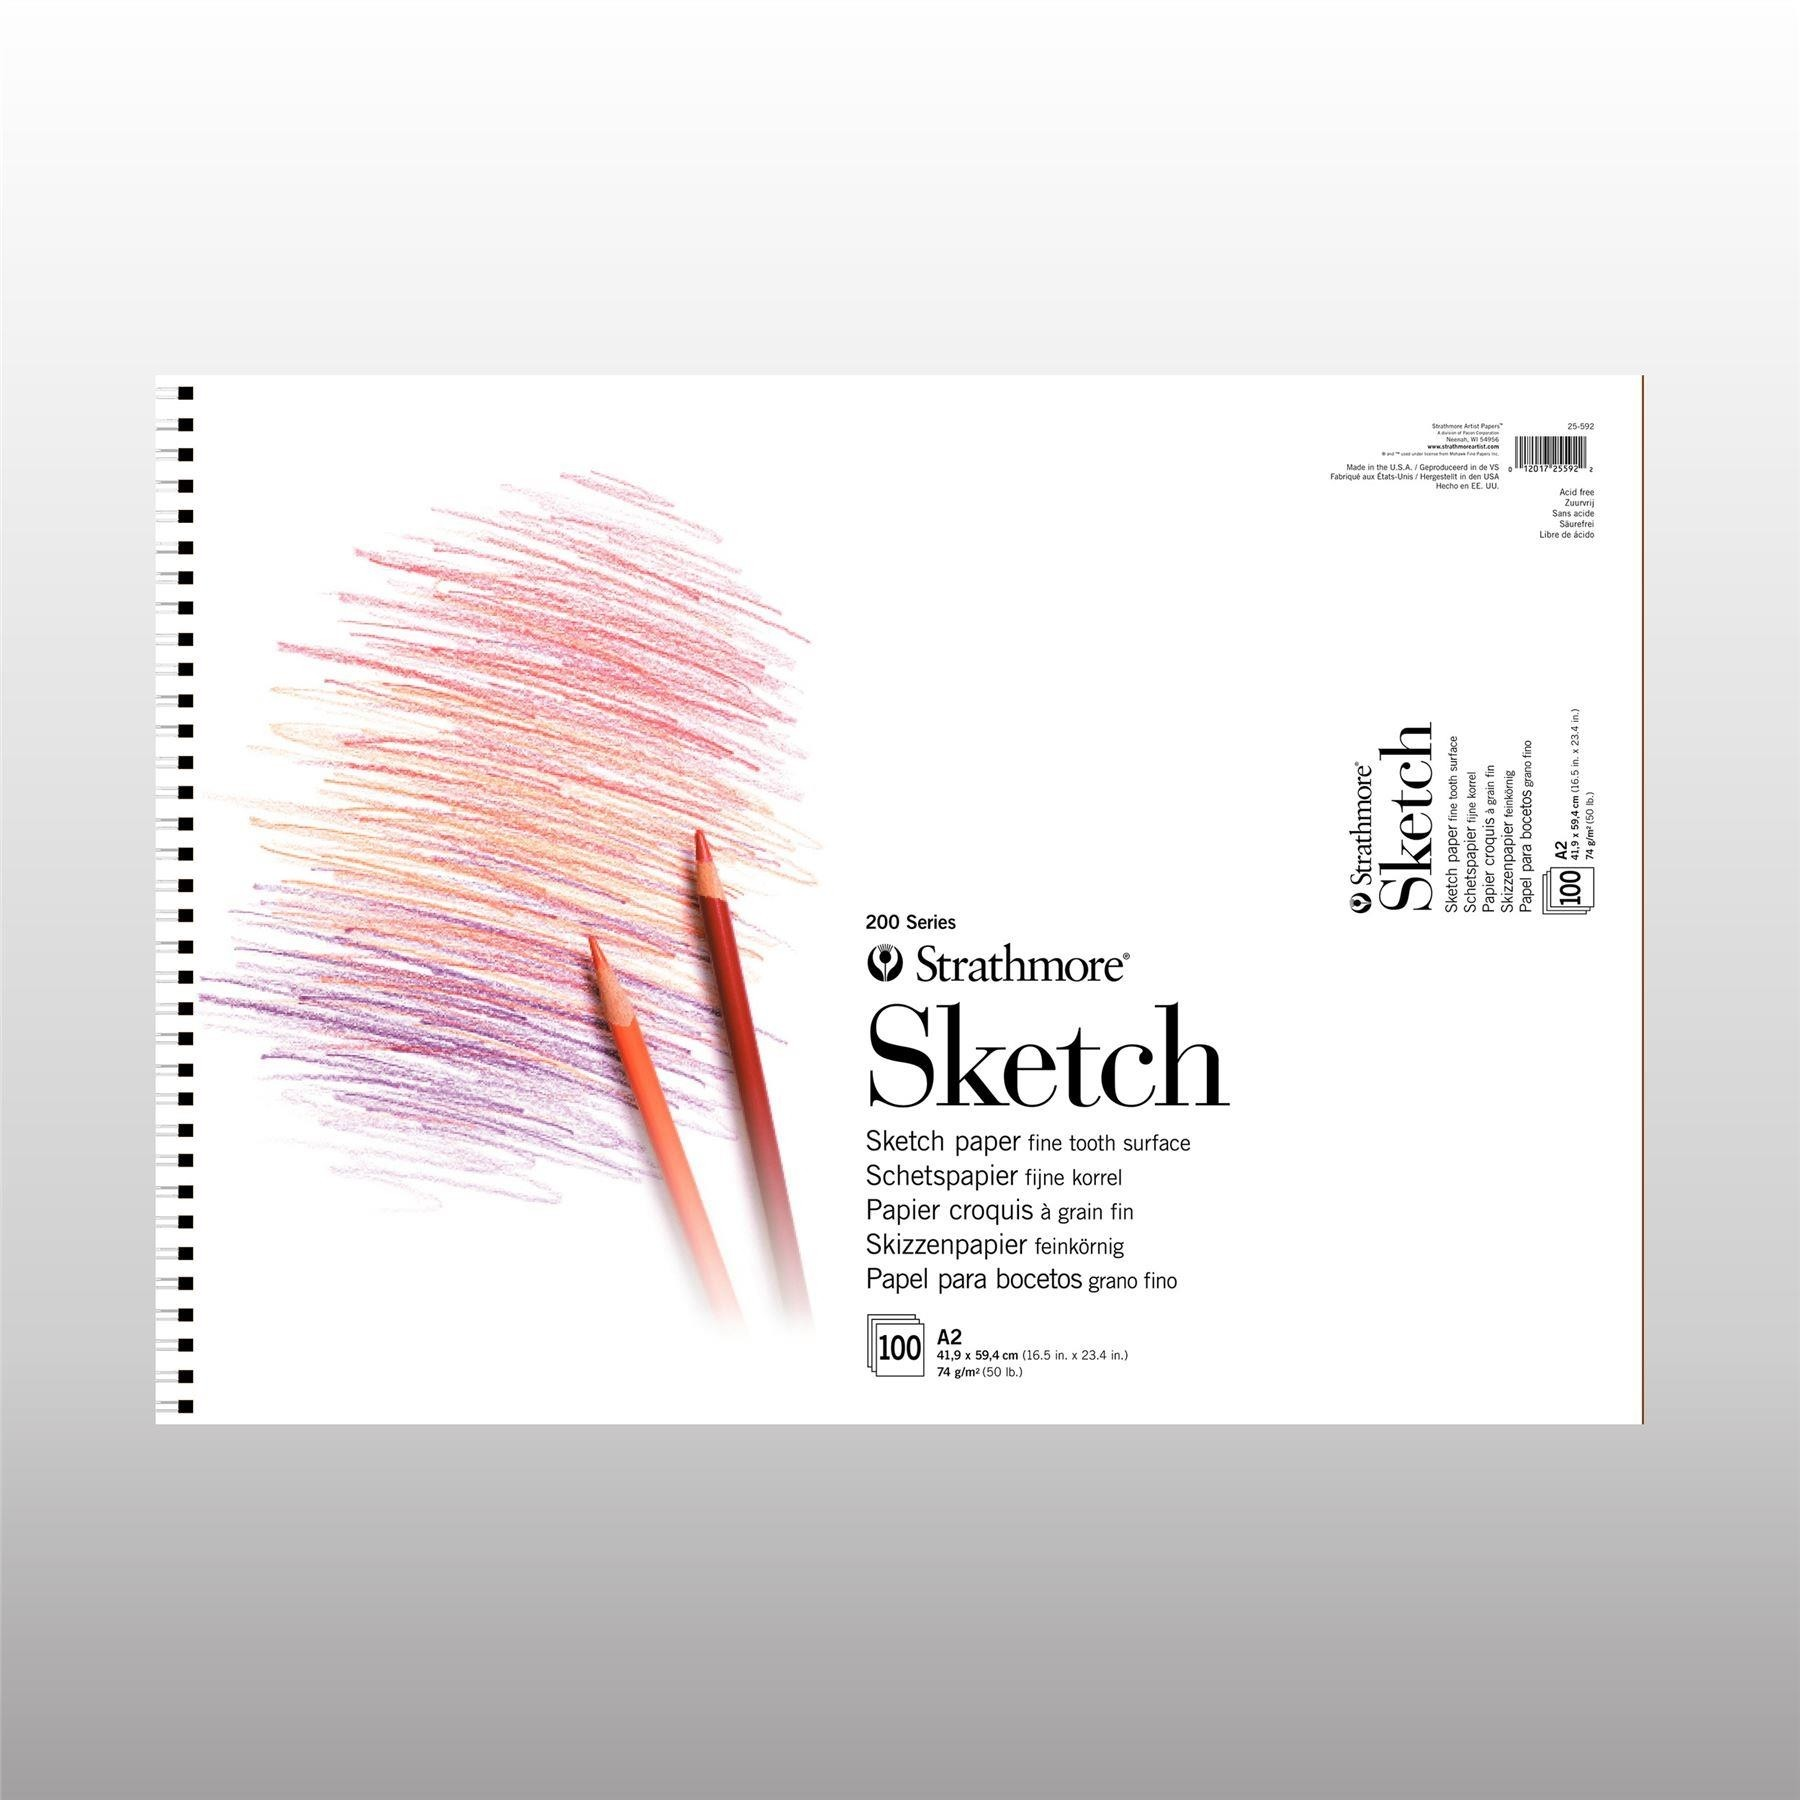 Strathmore series 200 drawing sketch paper pad A2 100 sheets 74gsm